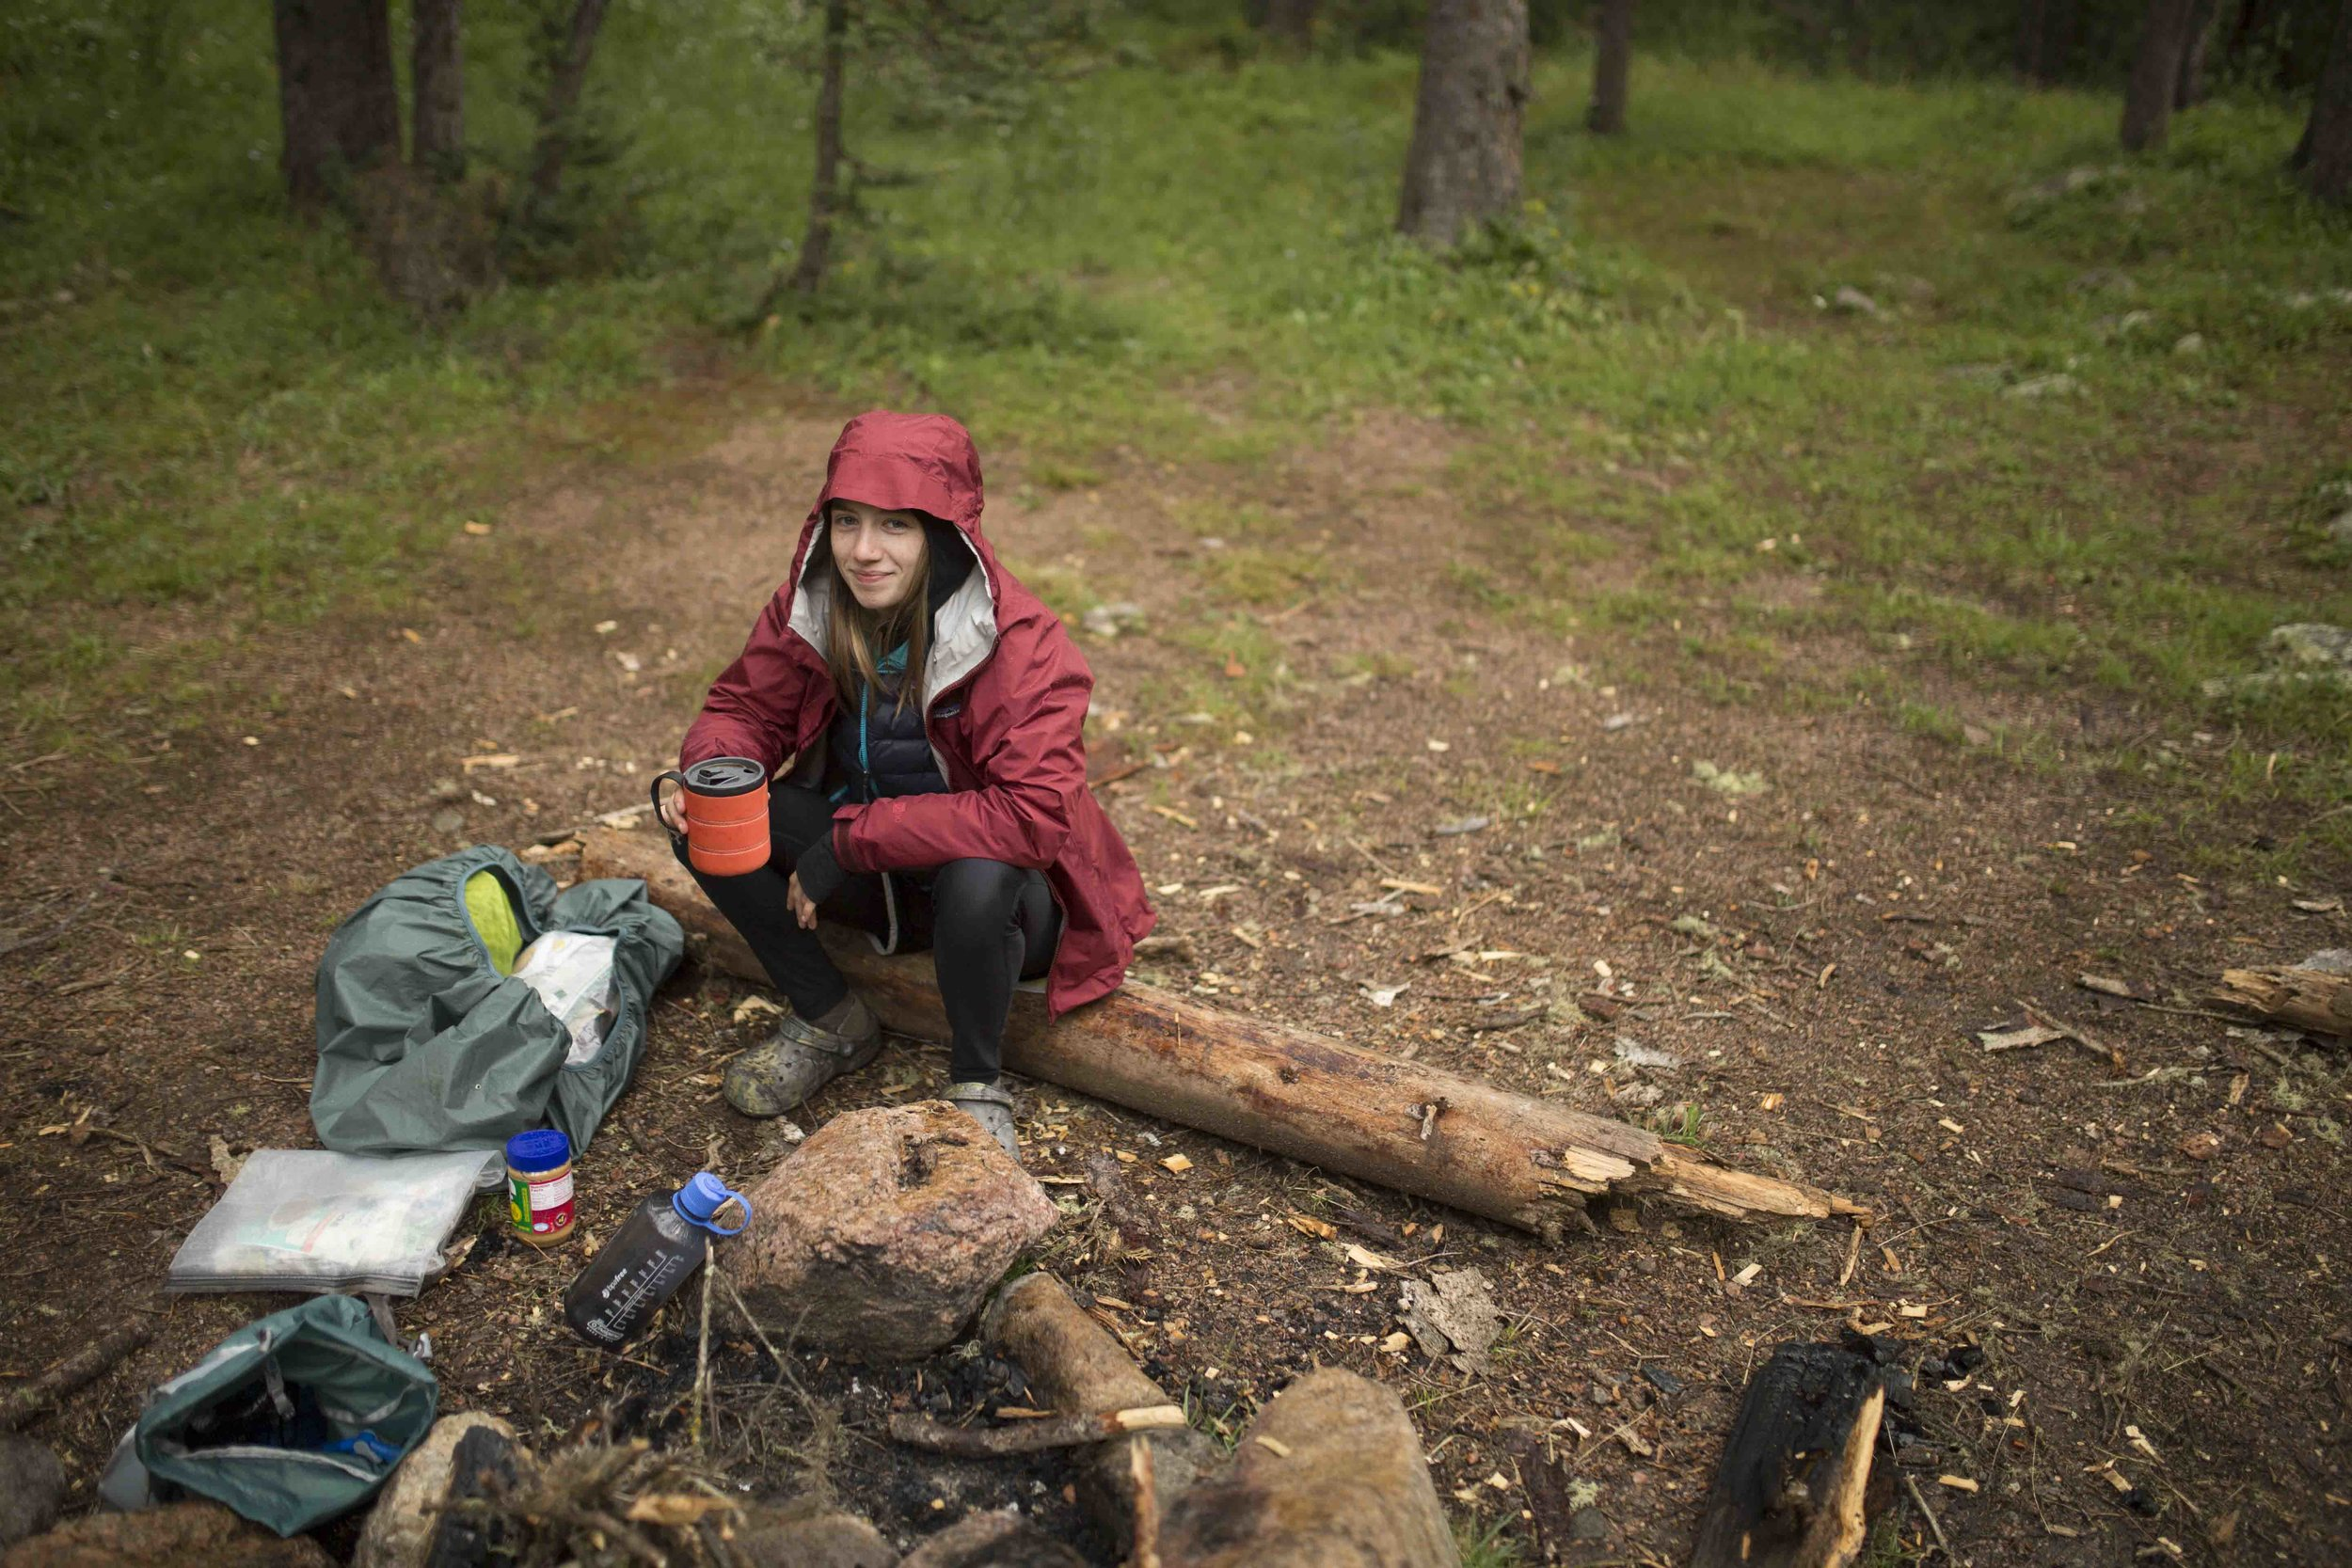 Here I am at a typical morning at camp, which, just like in real life,  always  starts with coffee. Photo from a trip to Colorado's Weminuche Wilderness, shot by  Cameron Mosier .